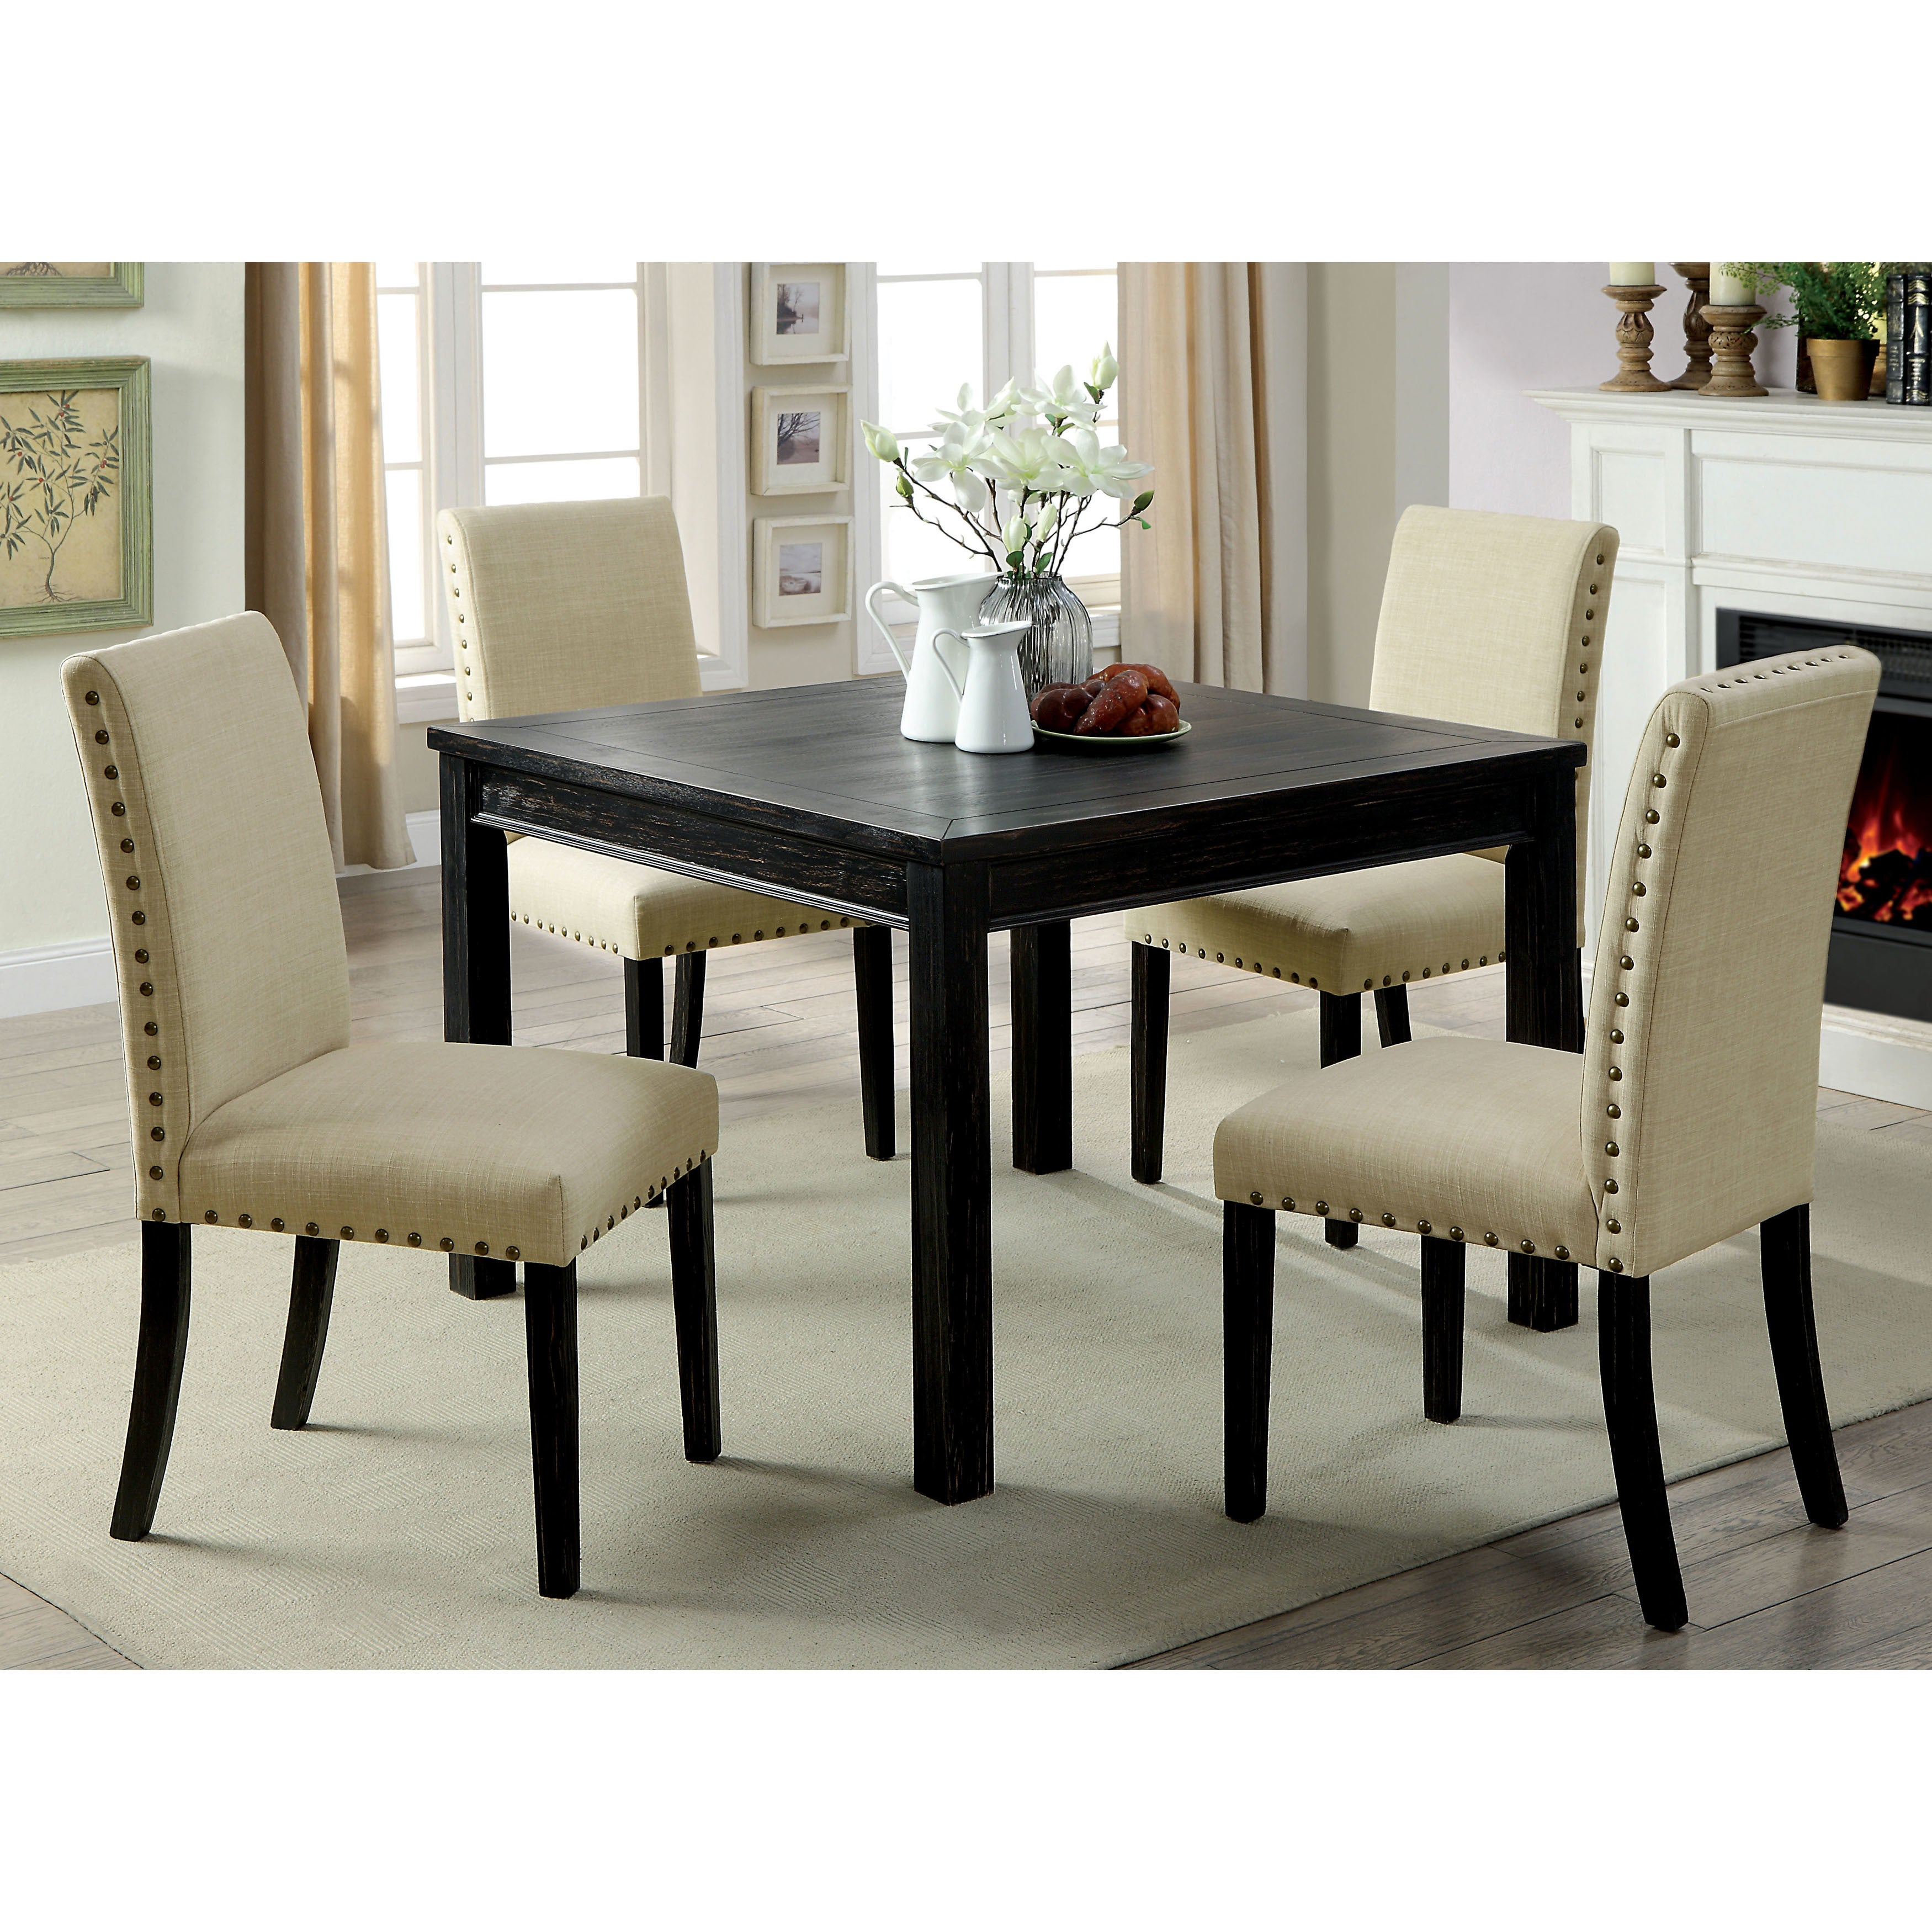 Delewarn Rustic Antique Black 5 Piece Dining Setfoa Within Newest Cargo 5 Piece Dining Sets (View 15 of 20)